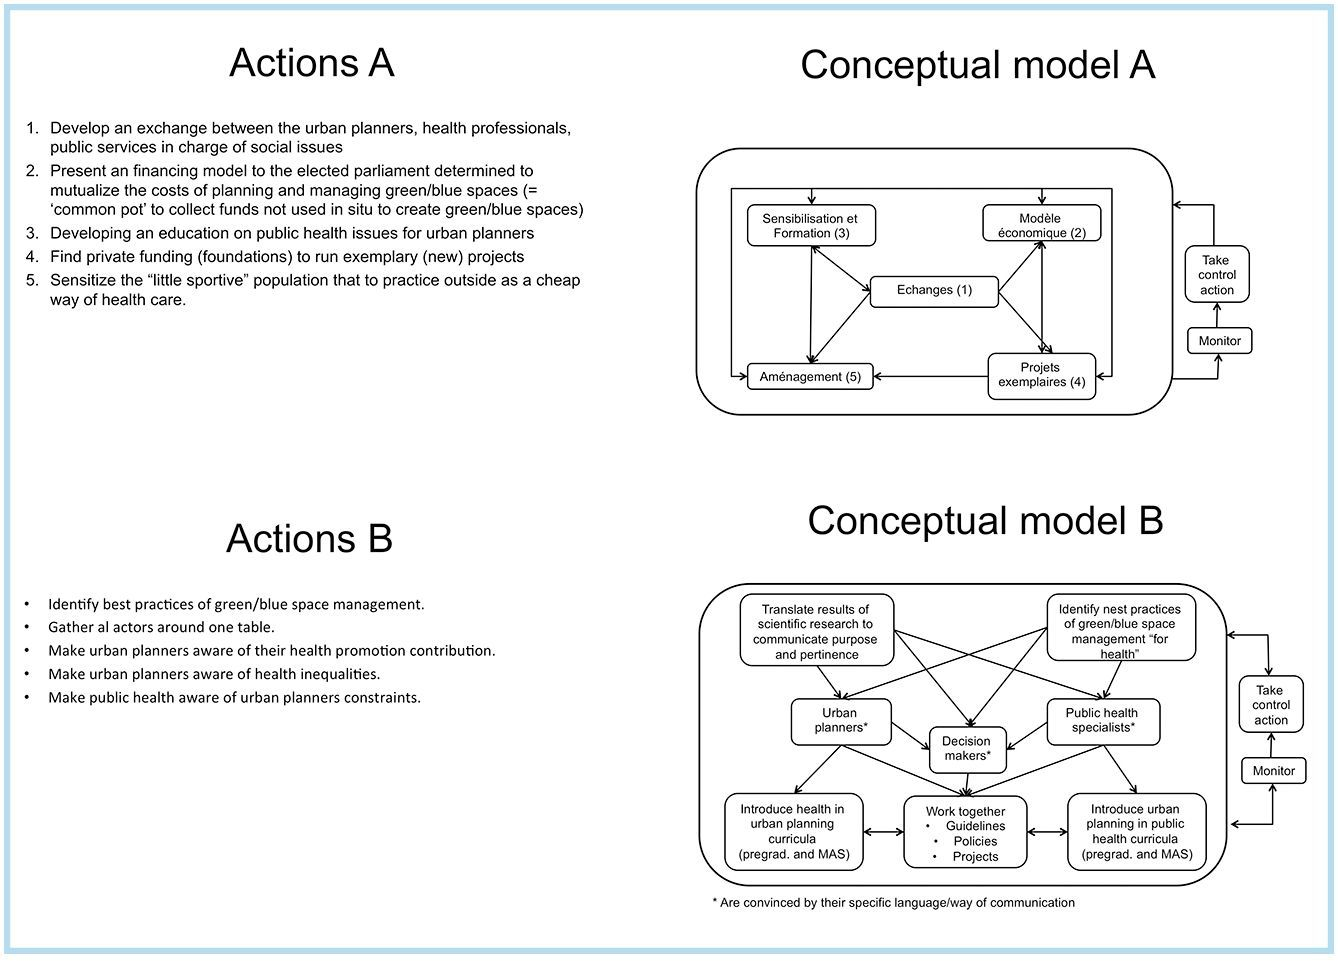 Figure 3: Two conceptual models the board members provided. Model A addresses root definition A and Model B root definition B.